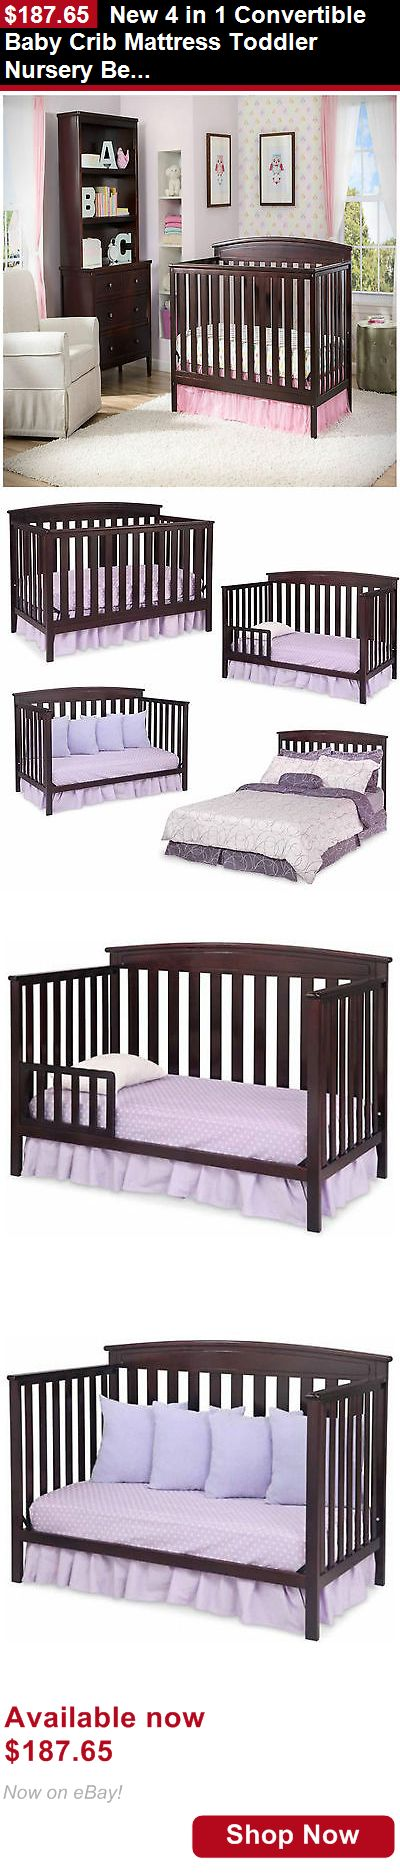 Cribs: New 4 In 1 Convertible Baby Crib Mattress Toddler Nursery Bed Changer Side BUY IT NOW ONLY: $187.65